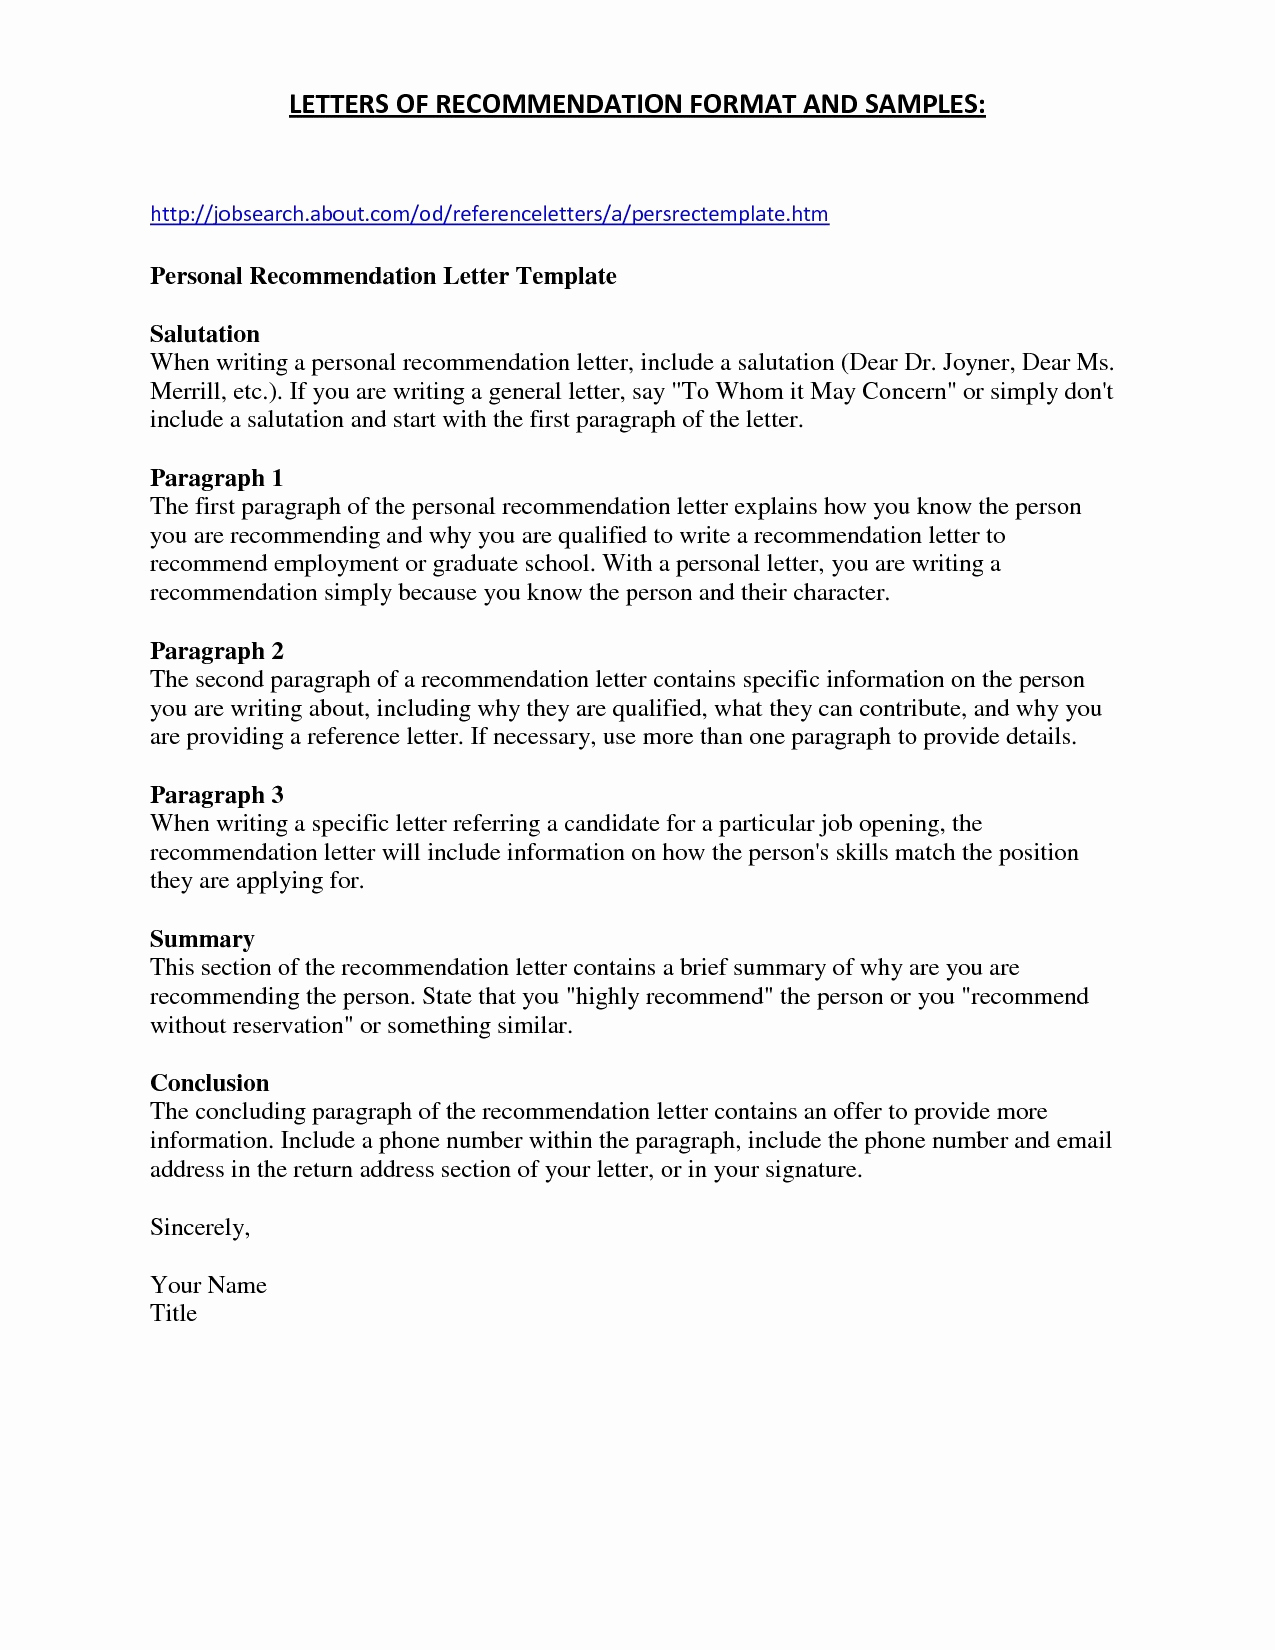 Postdoc Cover Letter Template - Postdoc Cover Letter Template Unique Job Cover Letter Template Uk